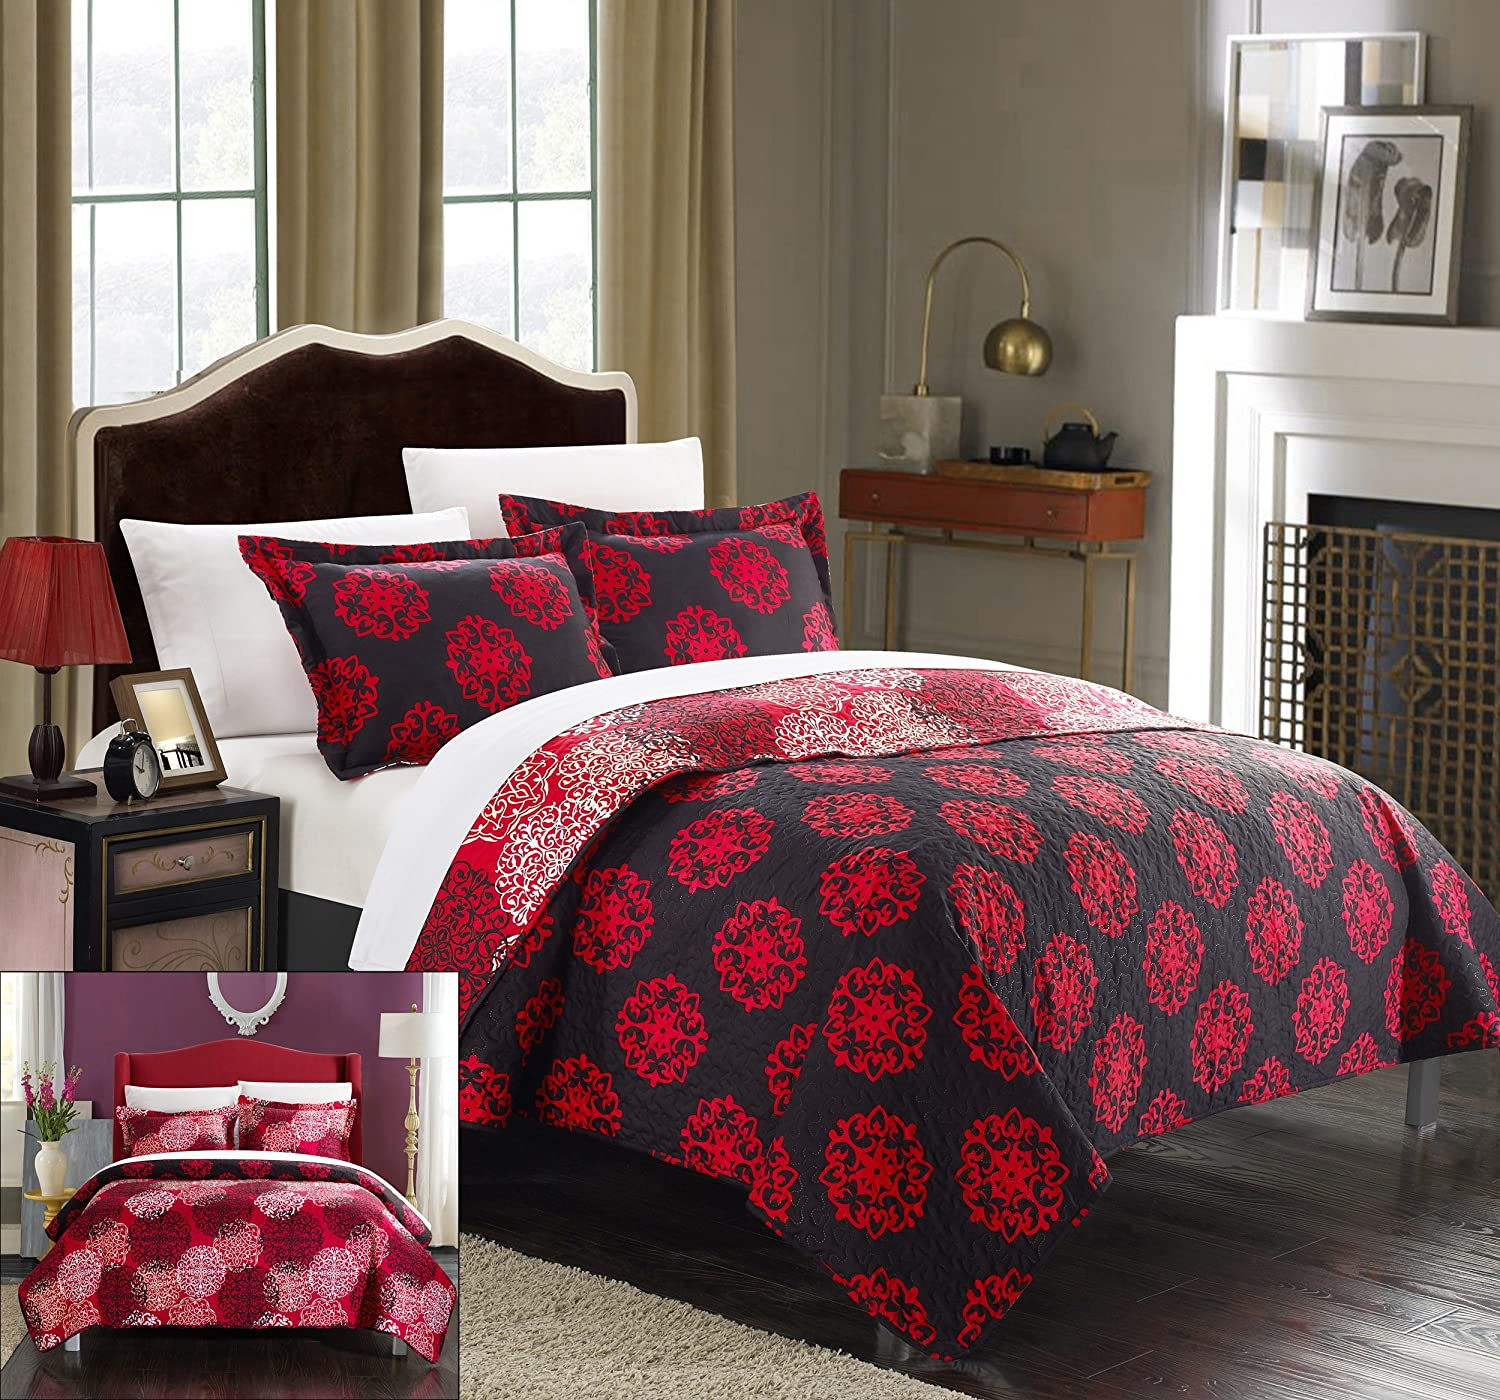 Chic Home 3 Piece Kelsie Boho Inspired Reversible Print Quilt Set, Queen, Red